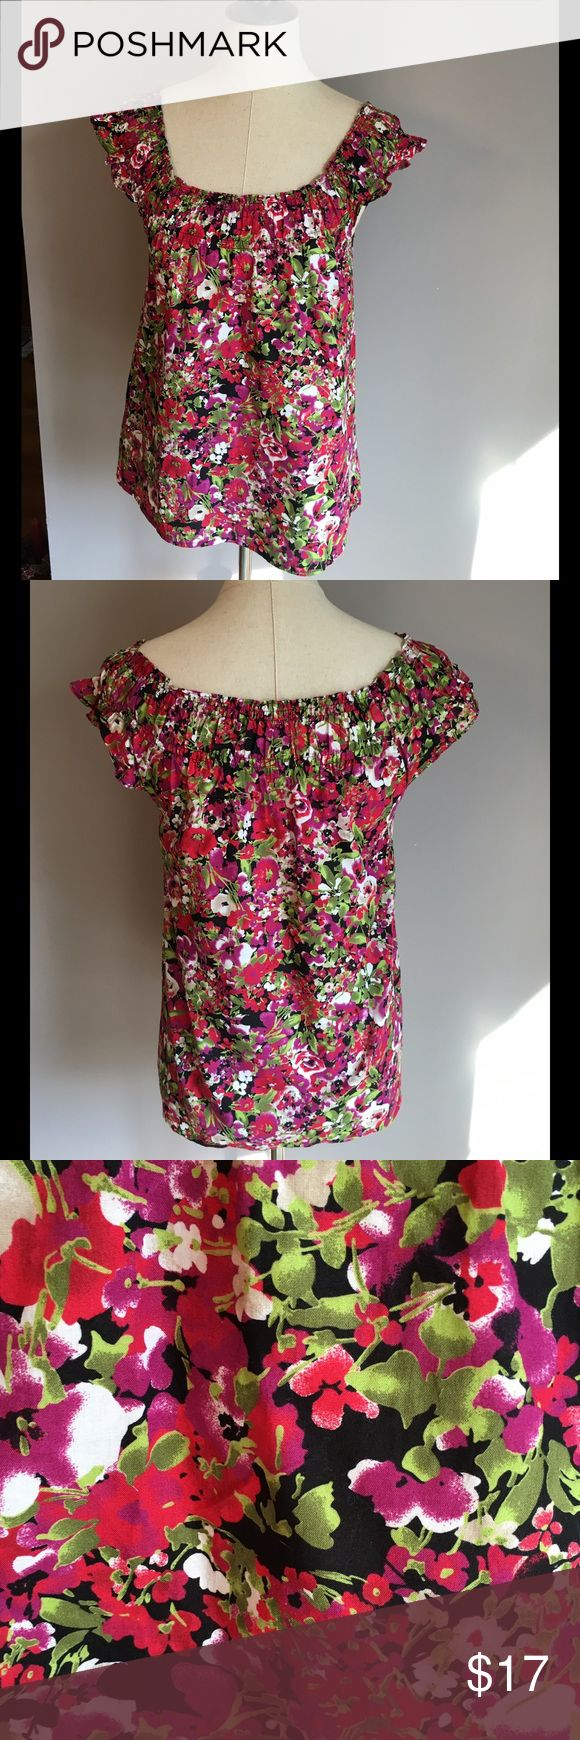 ❤️❤️Flirty floral top by LOFT❤️❤️ LOFT scoop neck floral blouse in gorgeous shades of red, black, green, purple, and white. Size medium petite. Short sleeves. Elastic at the neckline of top adds a very flattering look! LOFT Tops Blouses